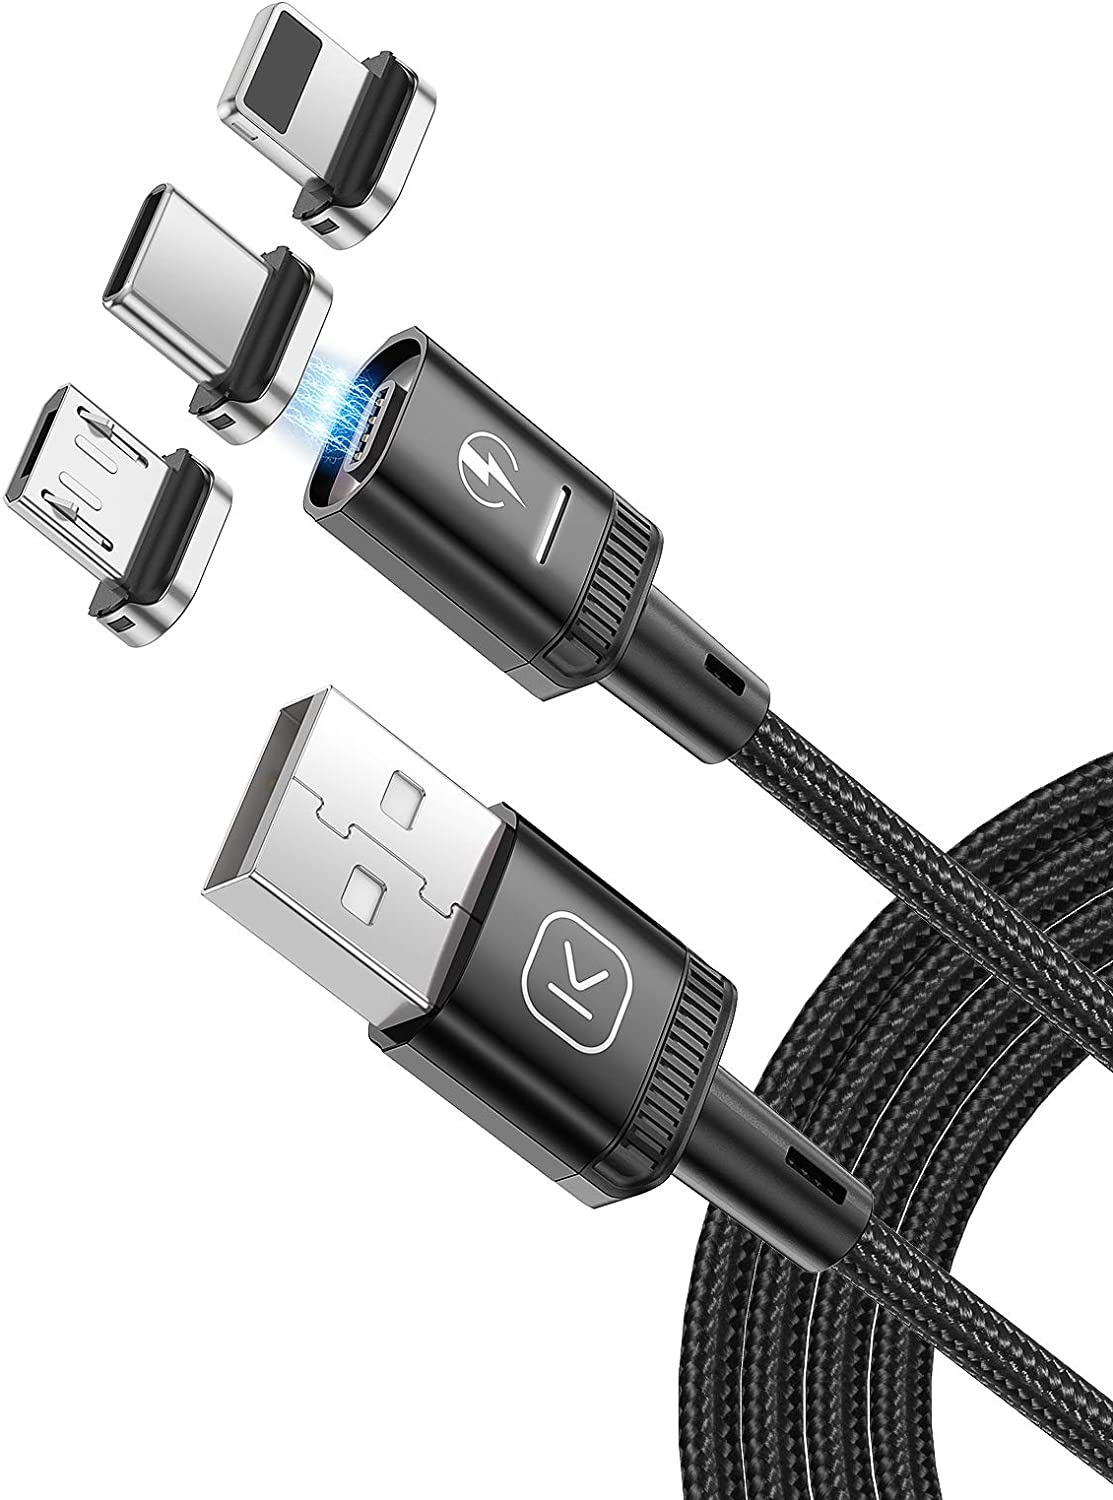 Magnetic Charging Cable 3.3ft,KUULAA 3 in 1 QC 3.0 3A Fast Charging Cord, Nylon Braided Magnetic Phone Charger, Magnetic USB Cable Compatible with Mirco USB Type C iProduct and Smart Devices